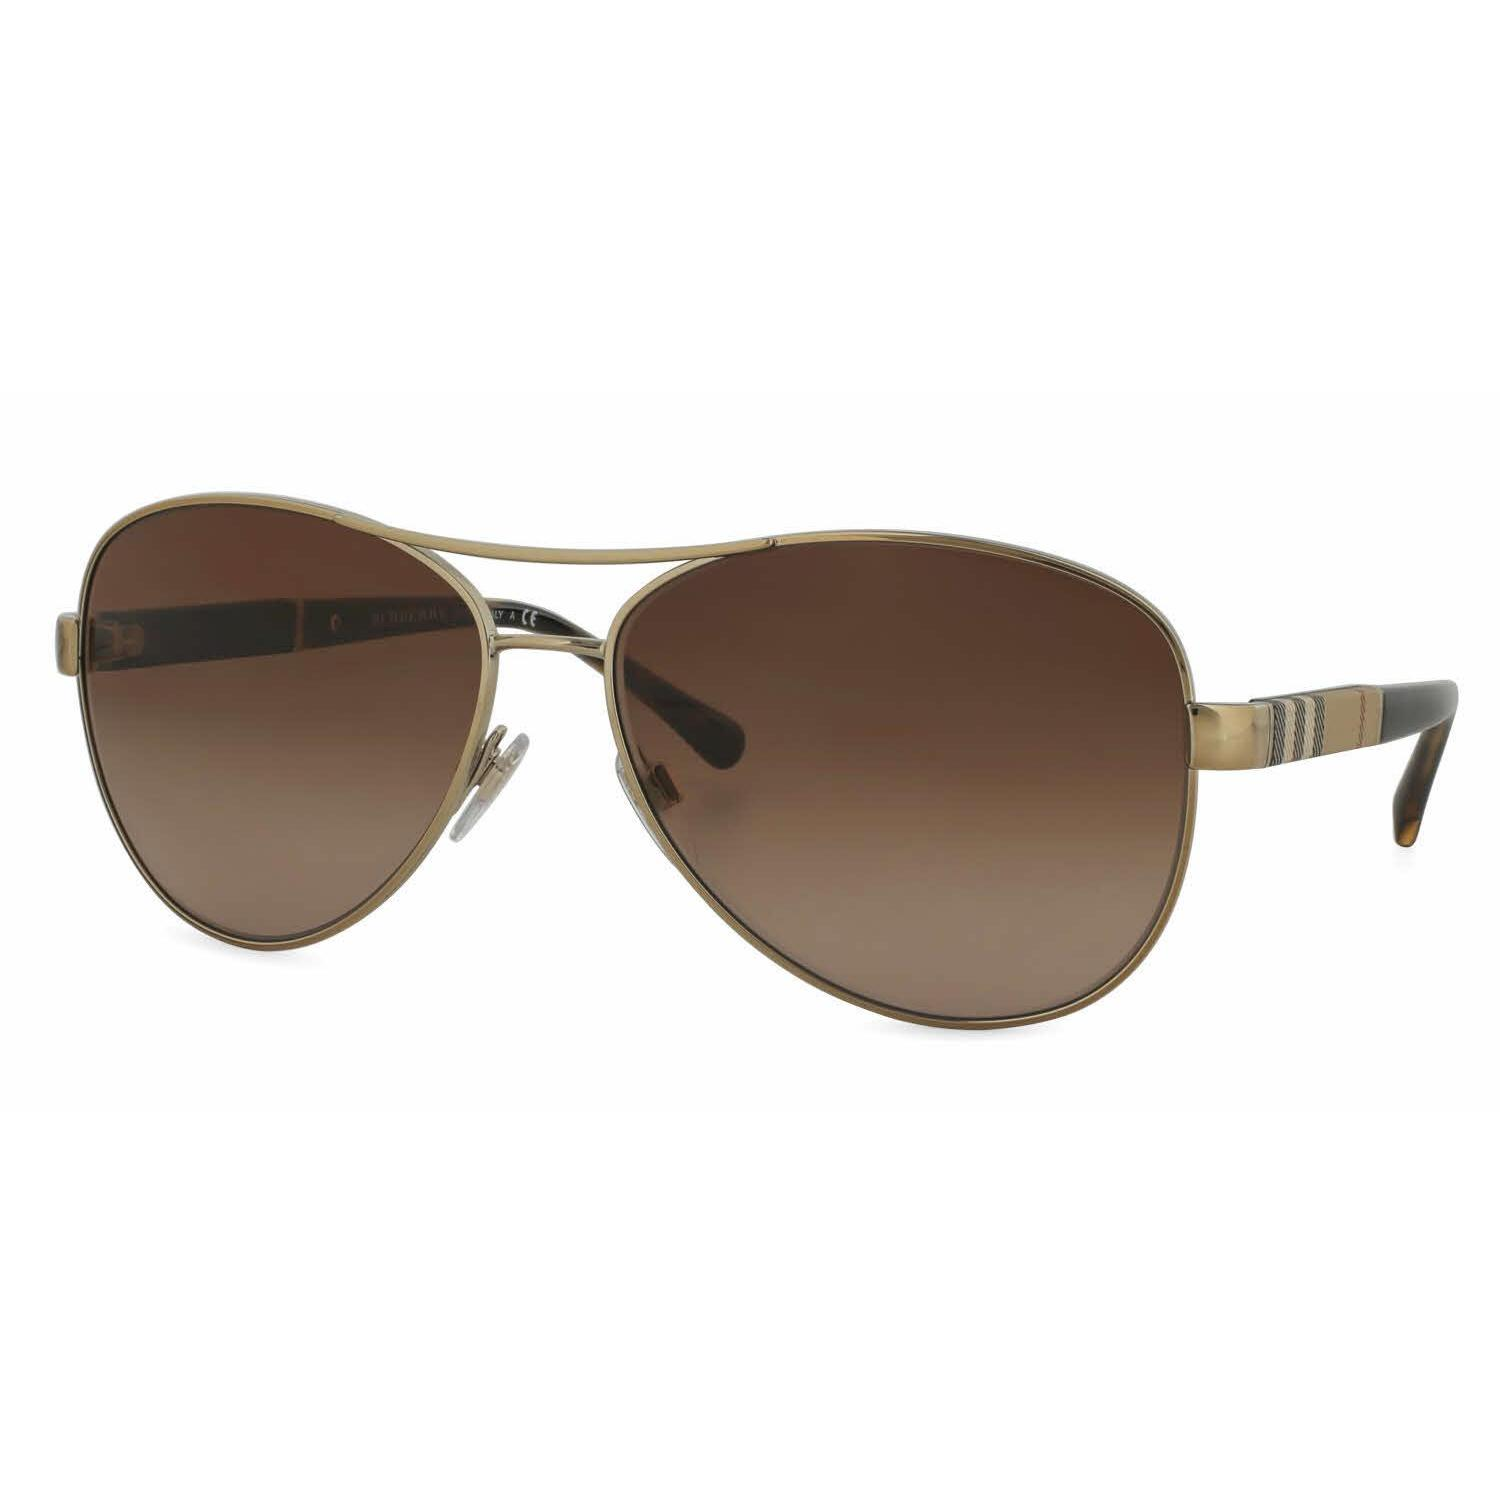 a5c4f45fb4d Shop Burberry Women BE3080 114513 Gold Cateye Sunglasses - Free Shipping  Today - Overstock - 13298311